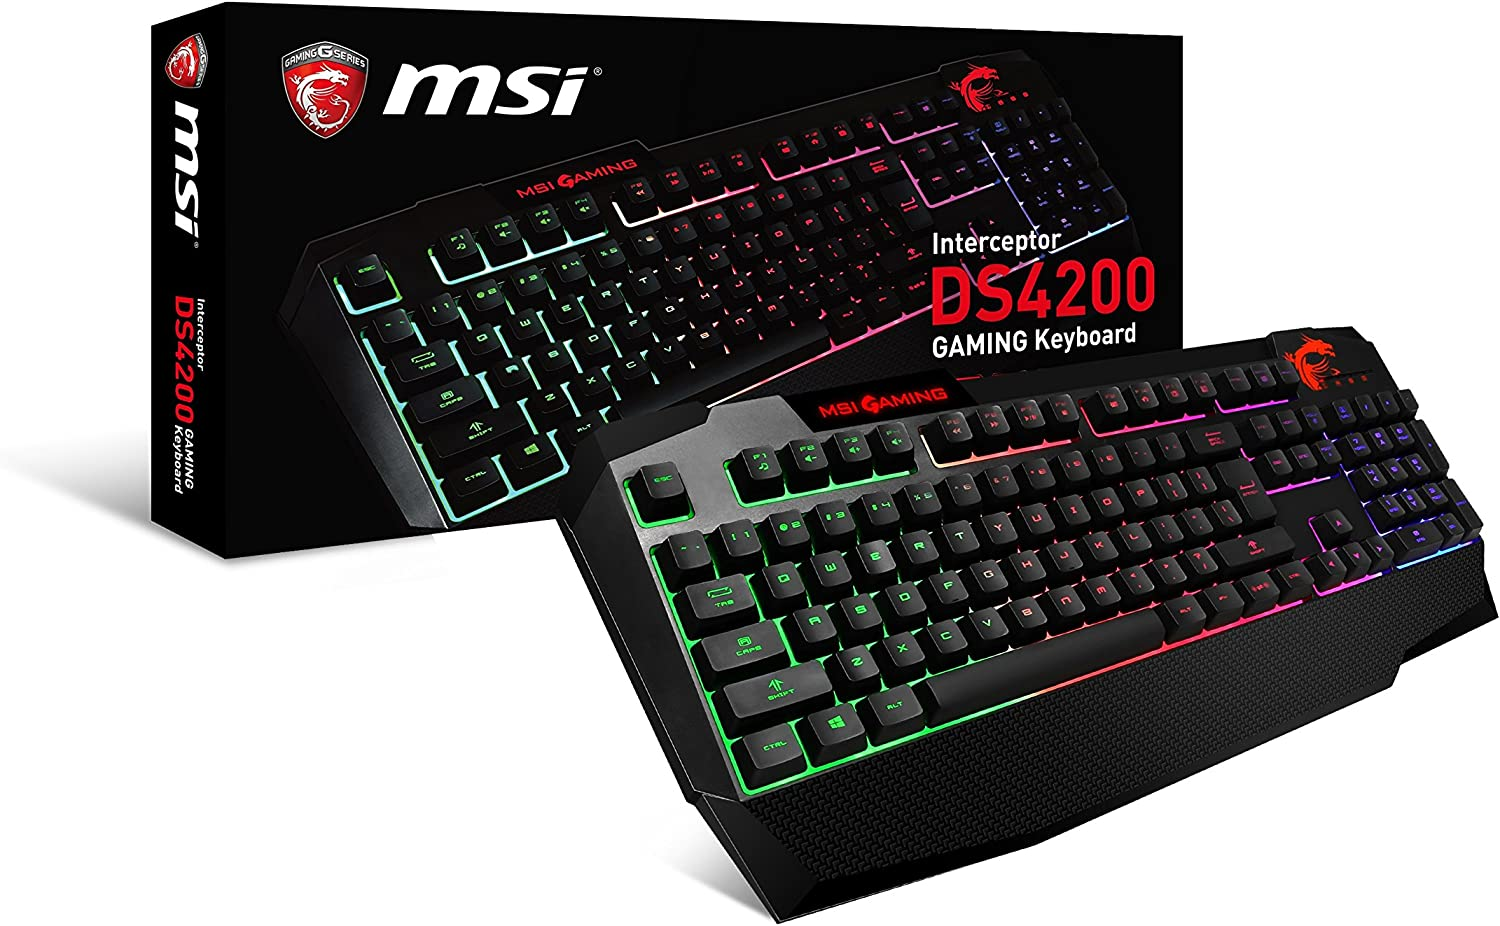 INTERCEPTOR DS4200 | MSI France